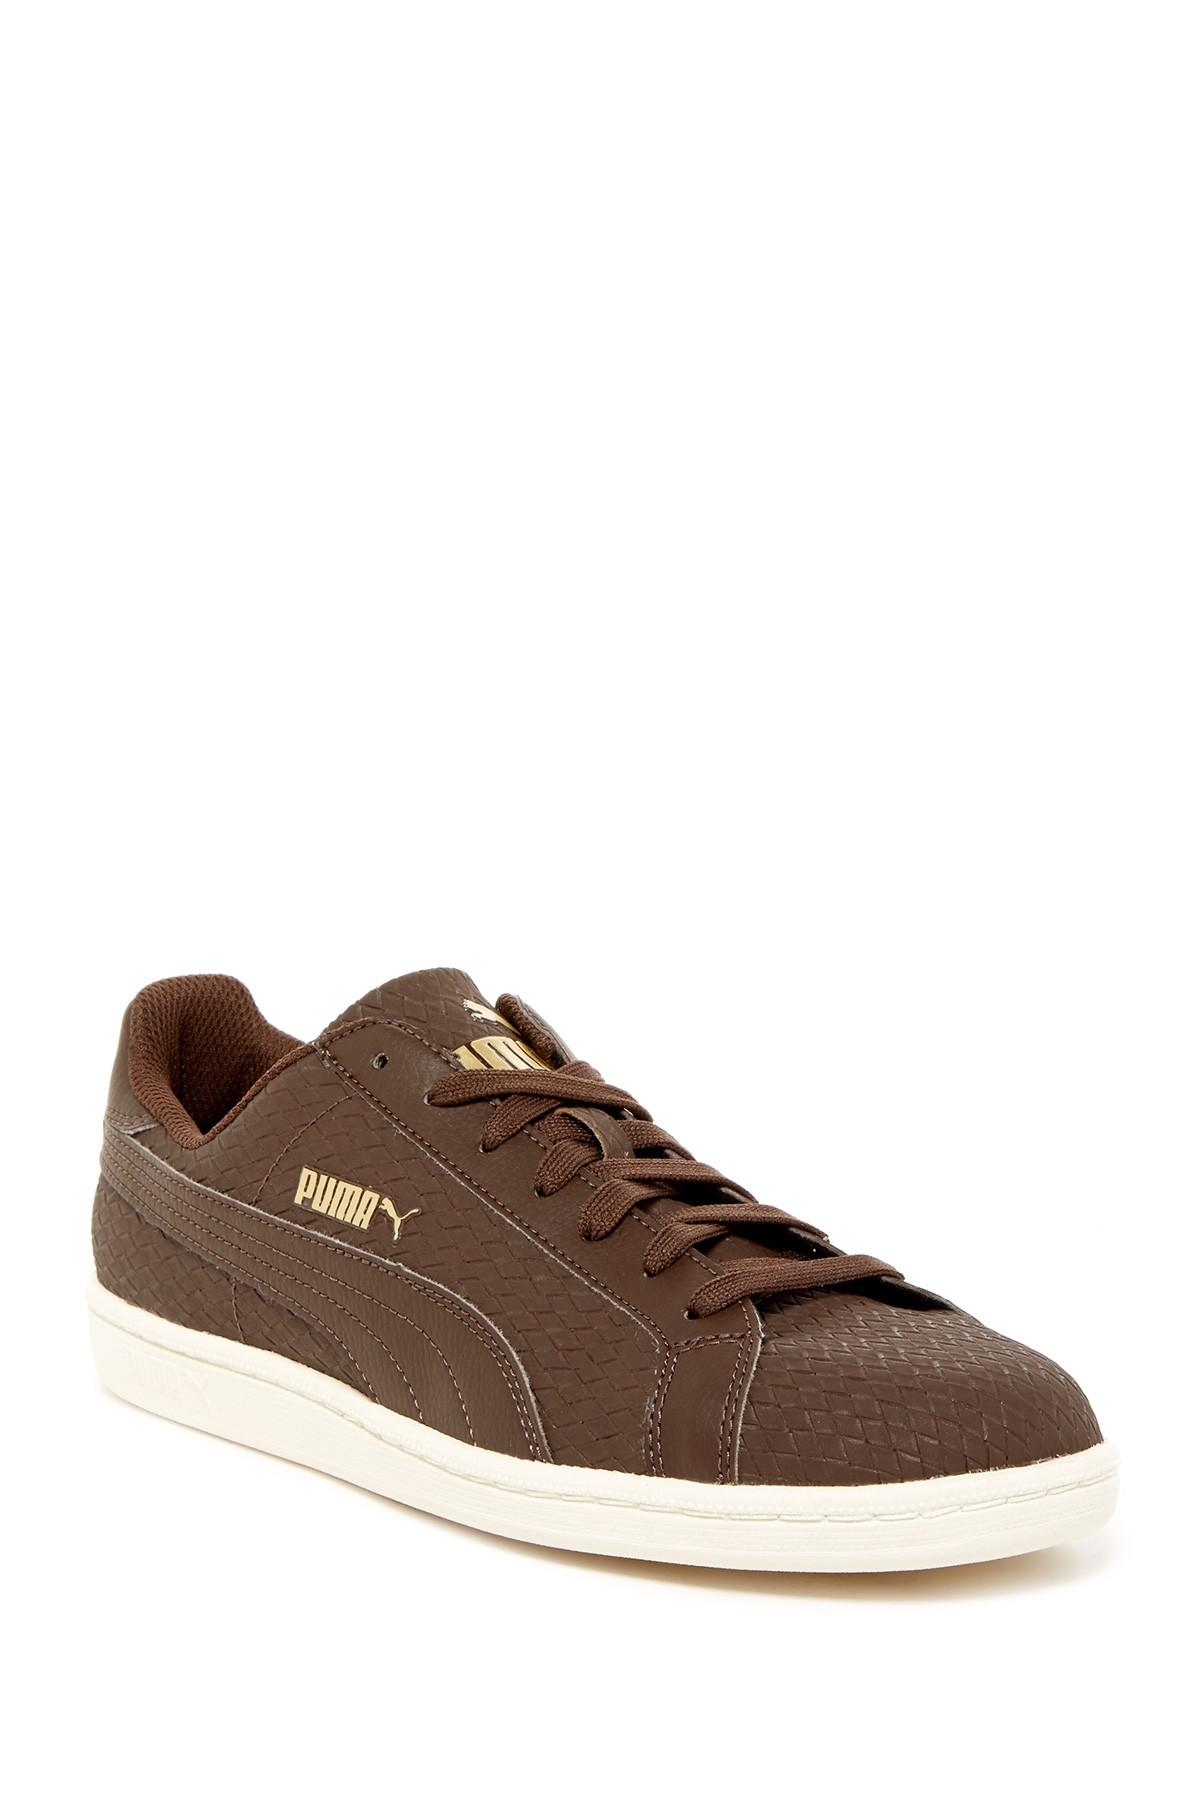 Lyst Puma Smash Woven Sneaker In Brown For Men